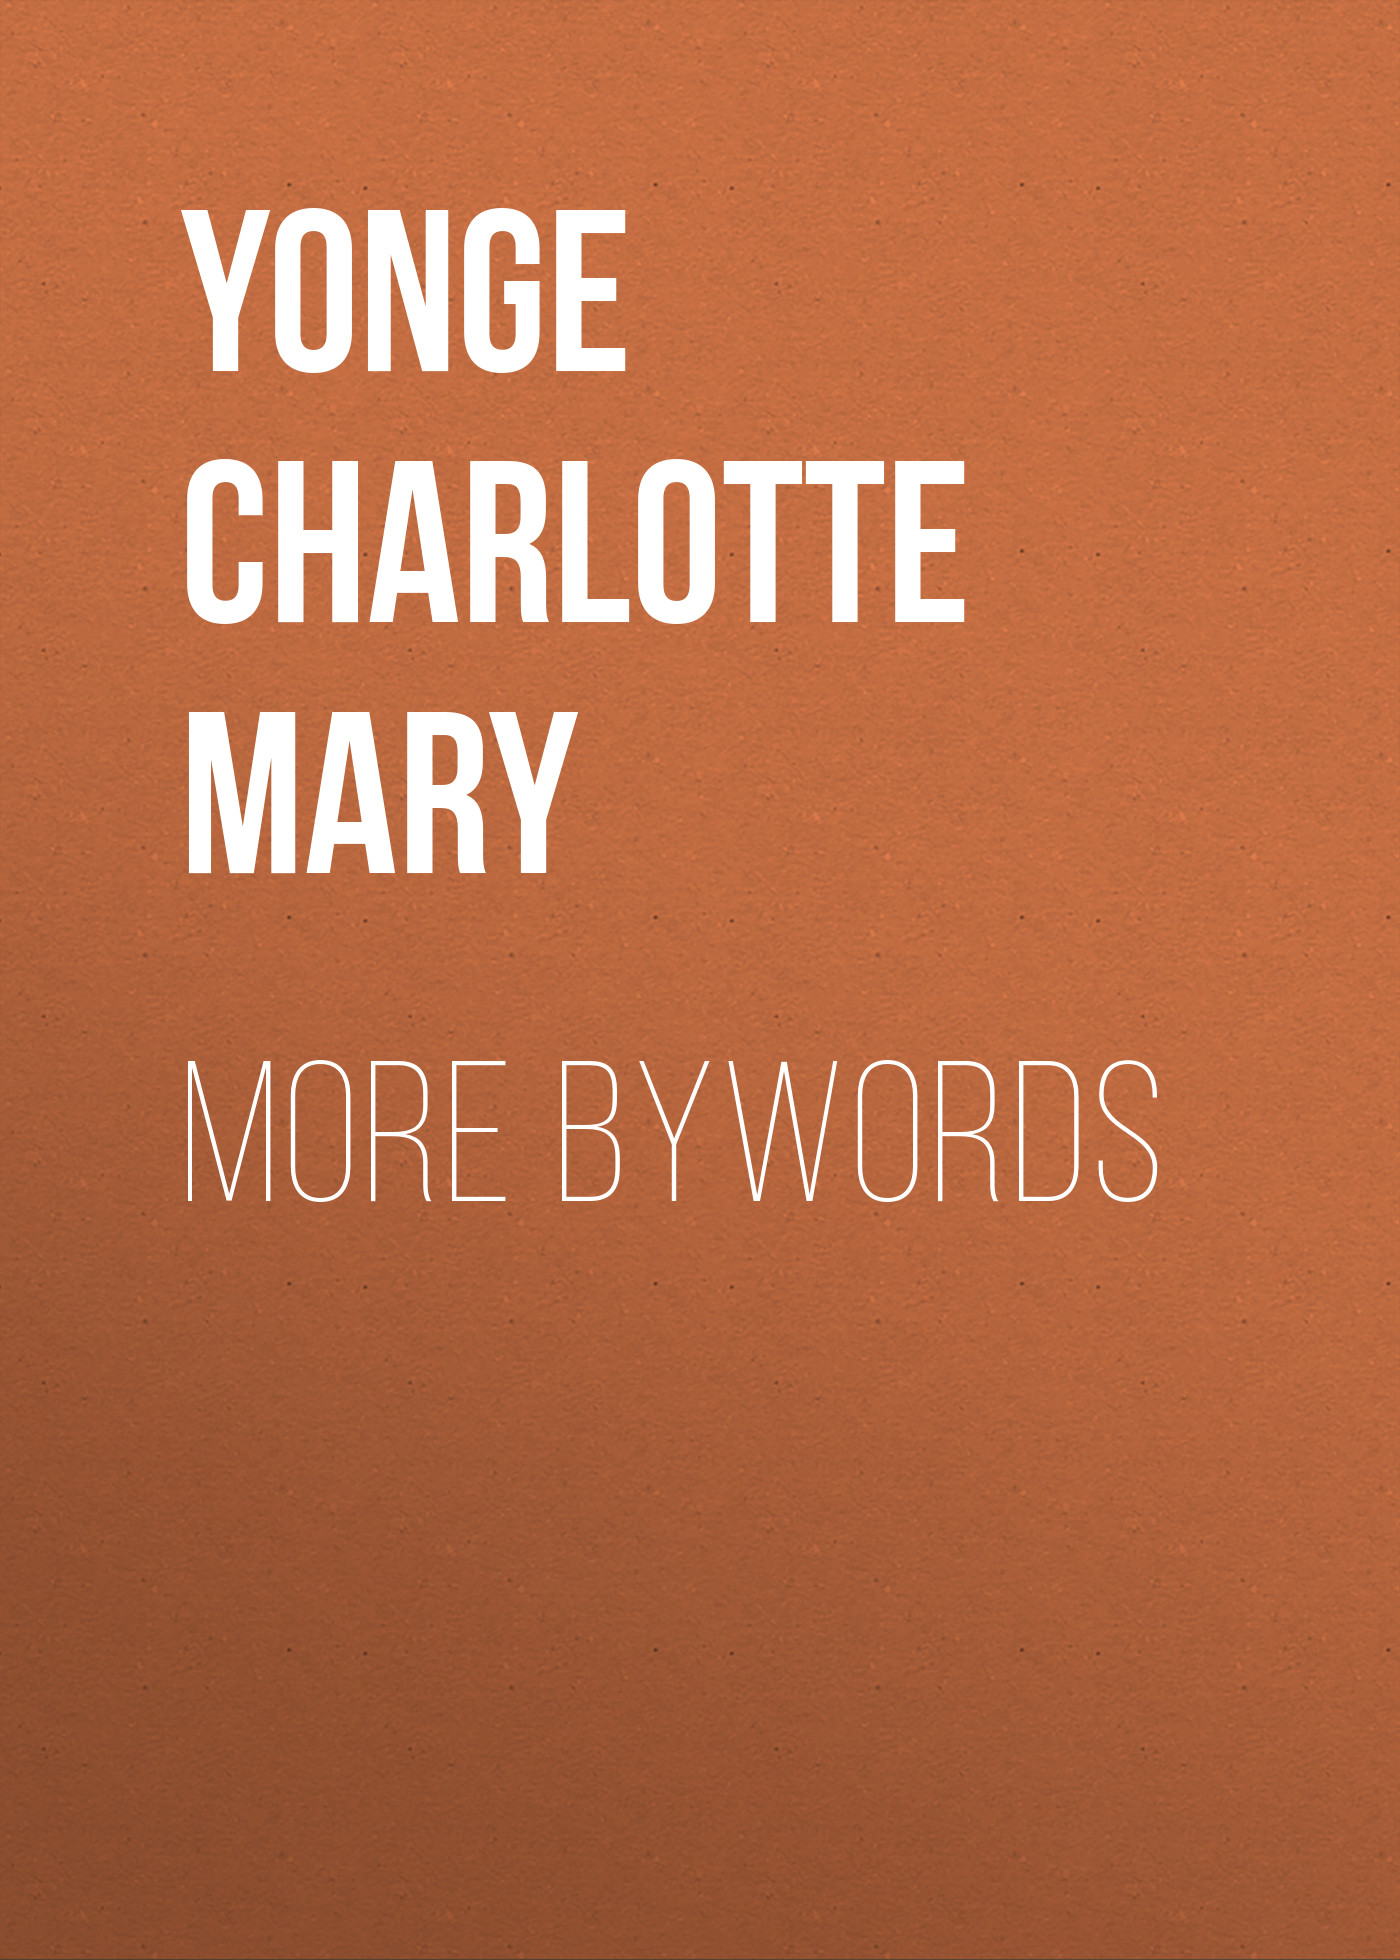 Yonge Charlotte Mary More Bywords yonge charlotte mary countess kate